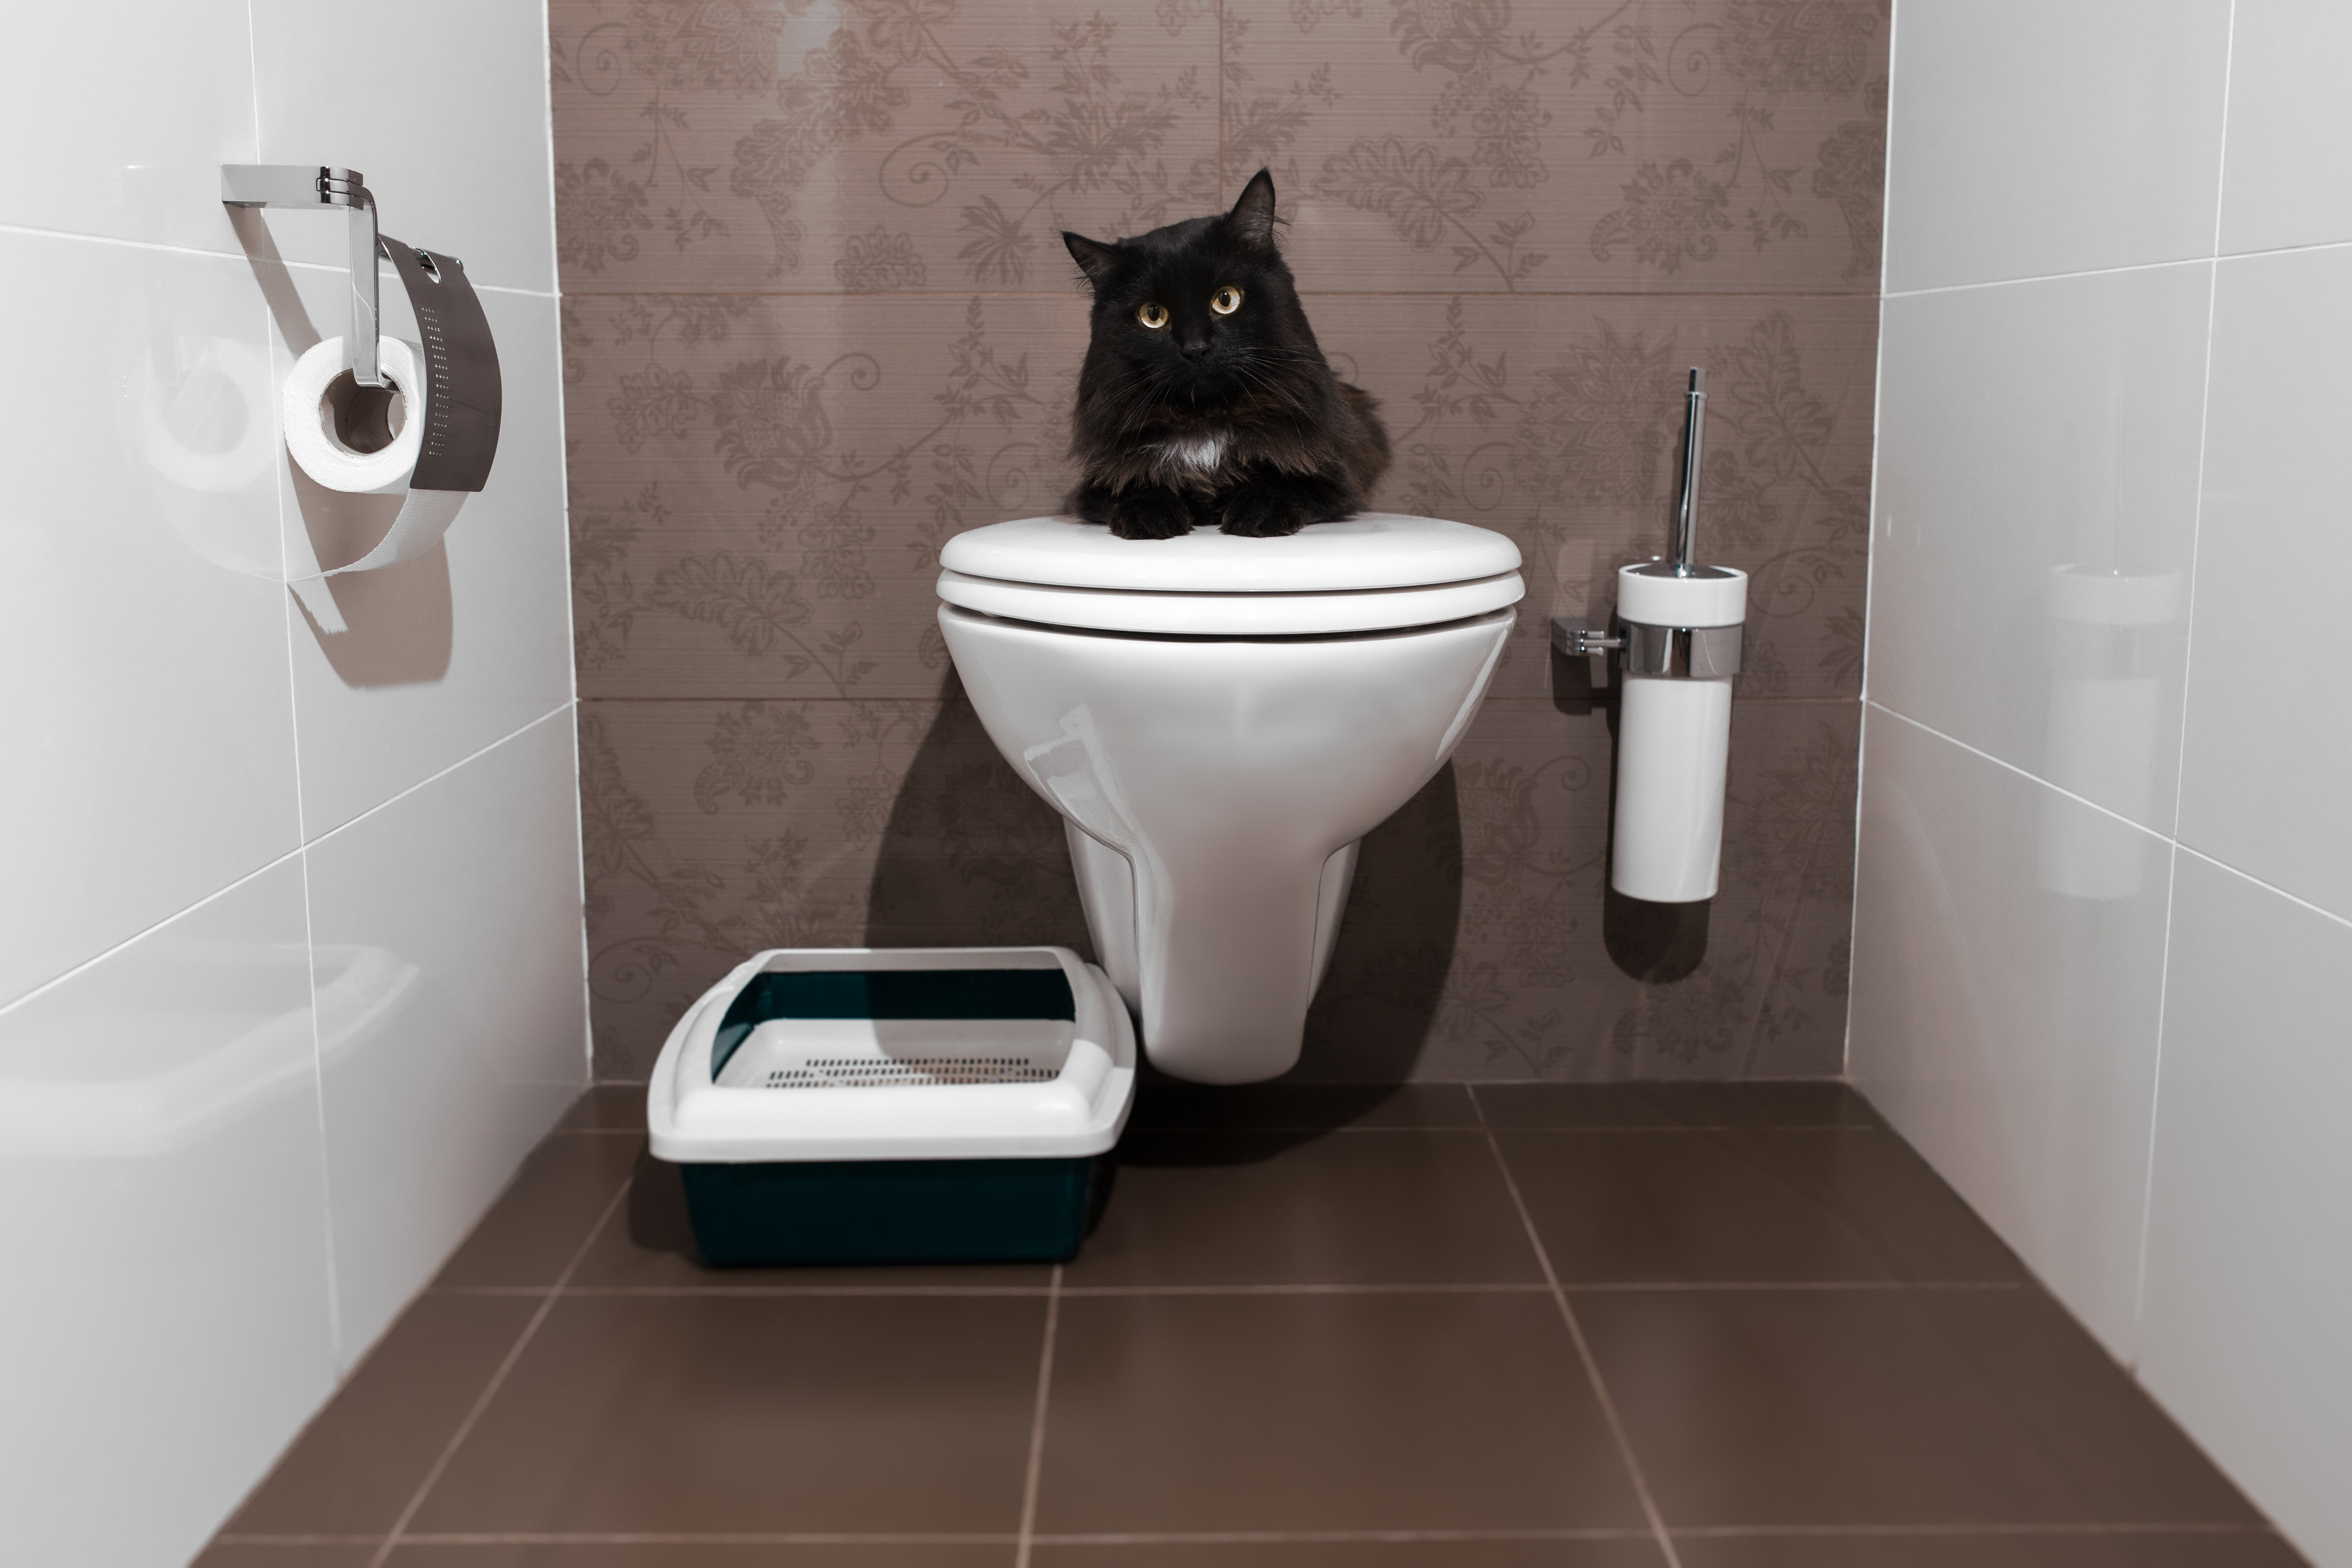 10 Best Automatic Litter Box Reviews in 2019: Self-Cleaning Models